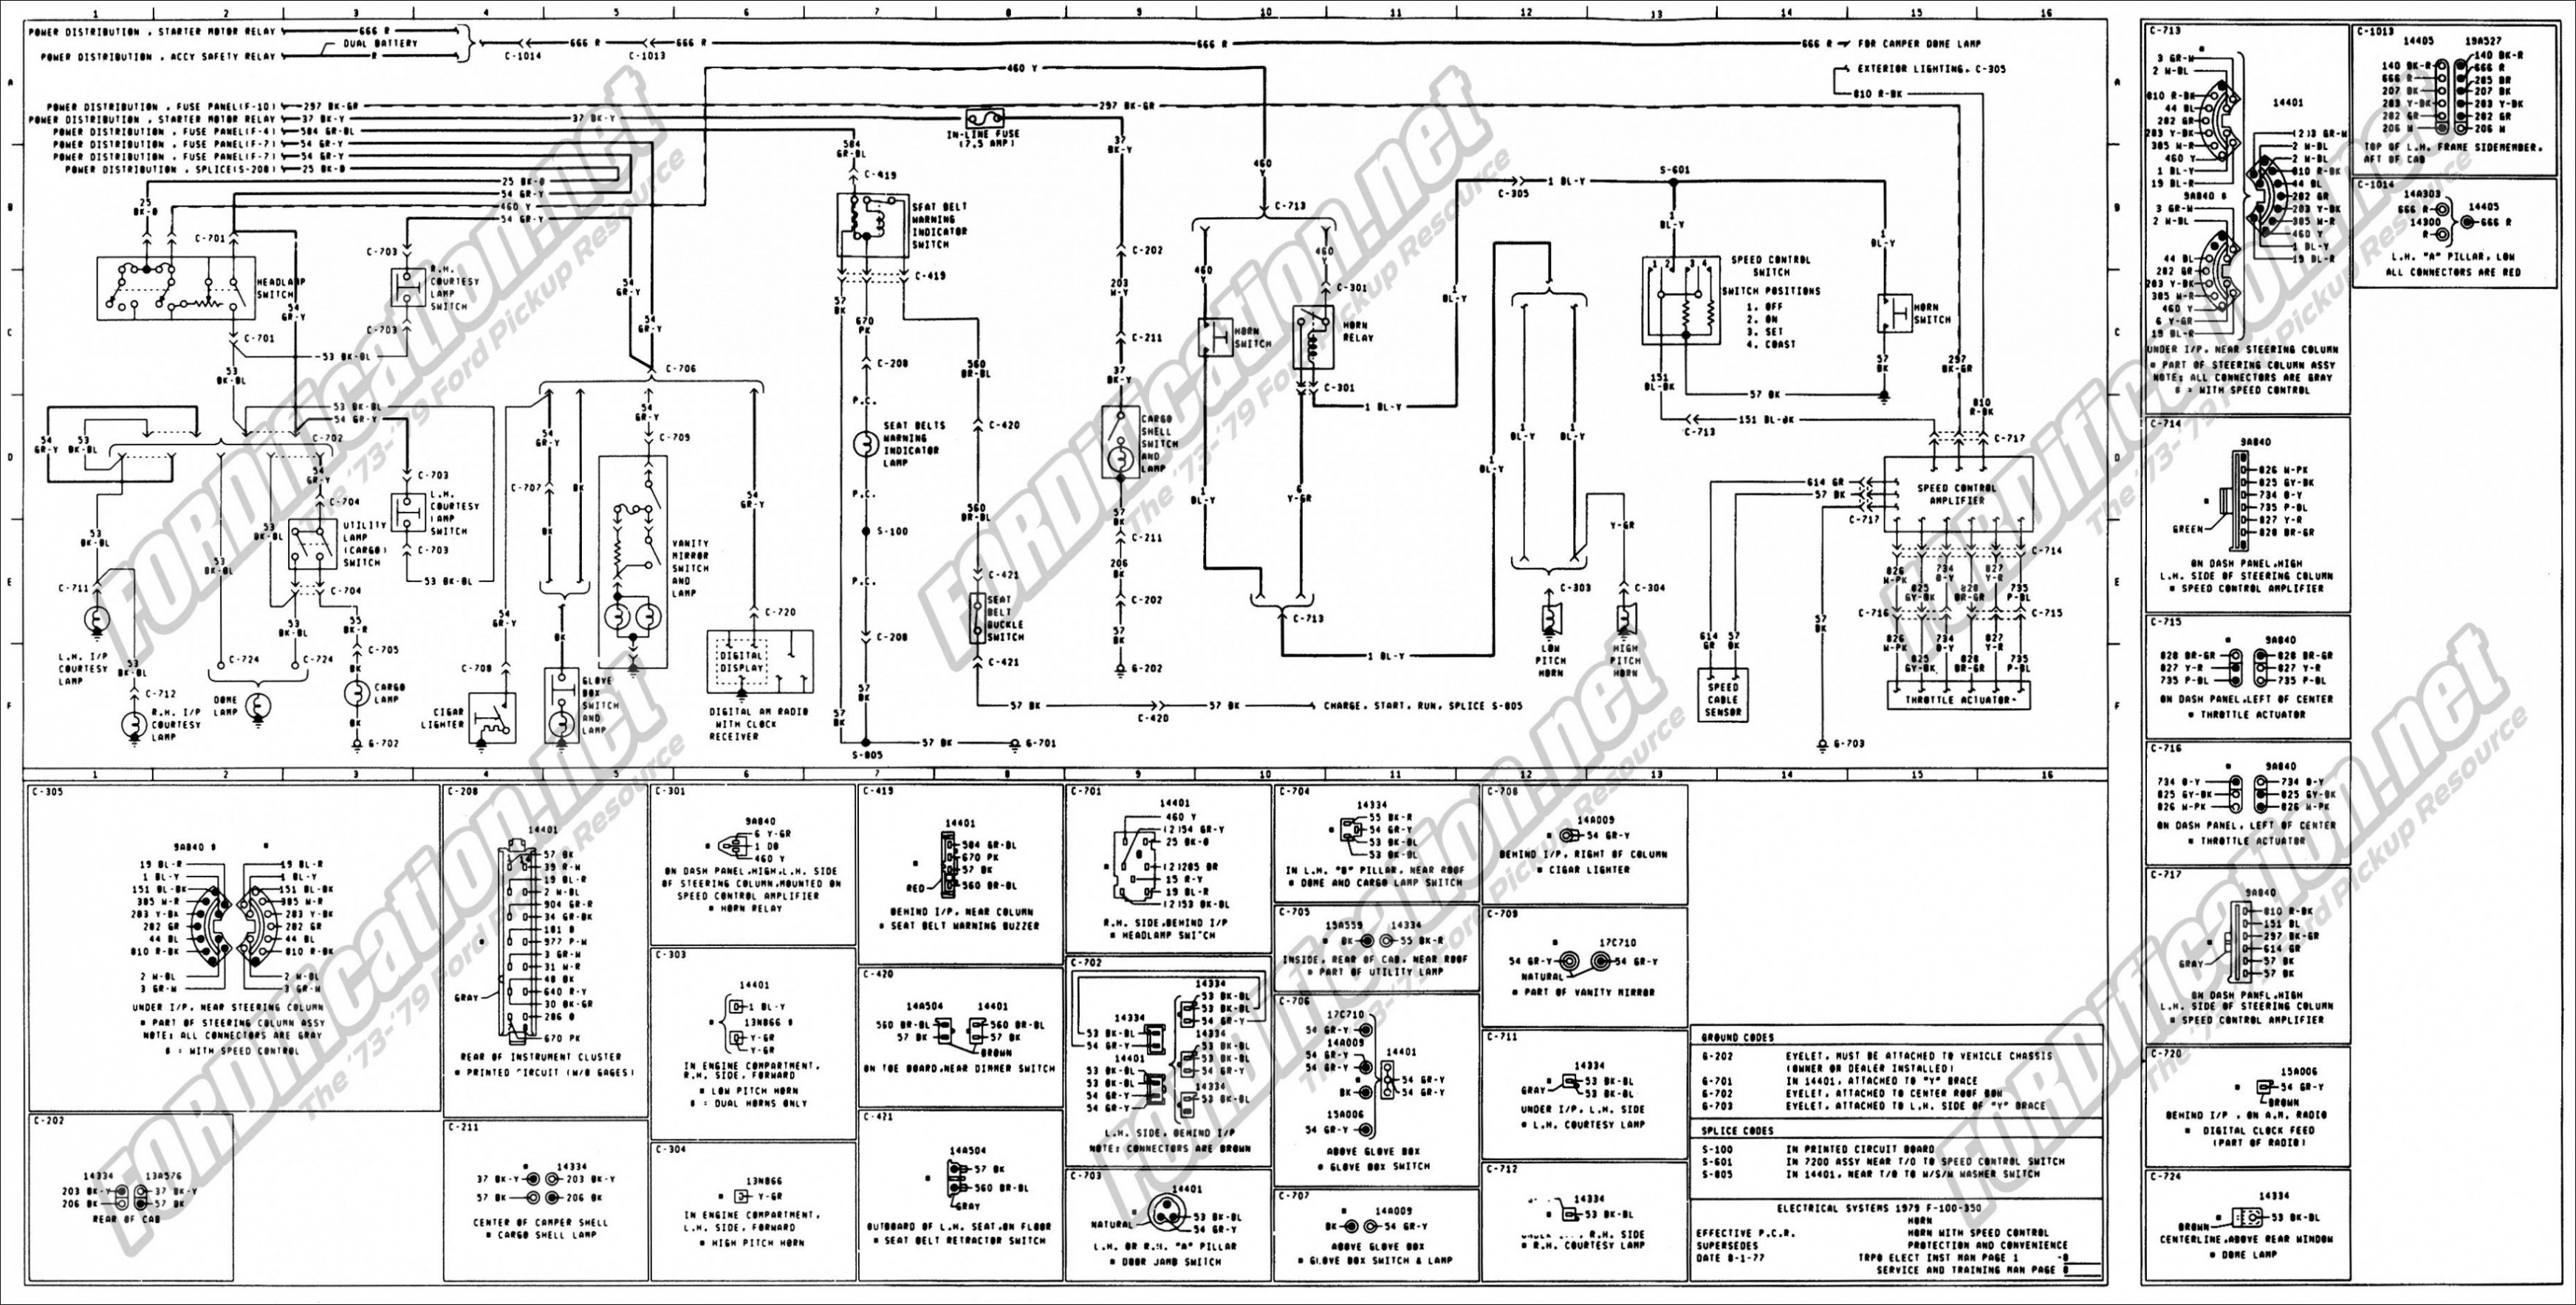 2004 F250 Trailer Wiring Diagram Simplified Shapes 1997 Ford F150 - 2004 F150 Trailer Wiring Diagram